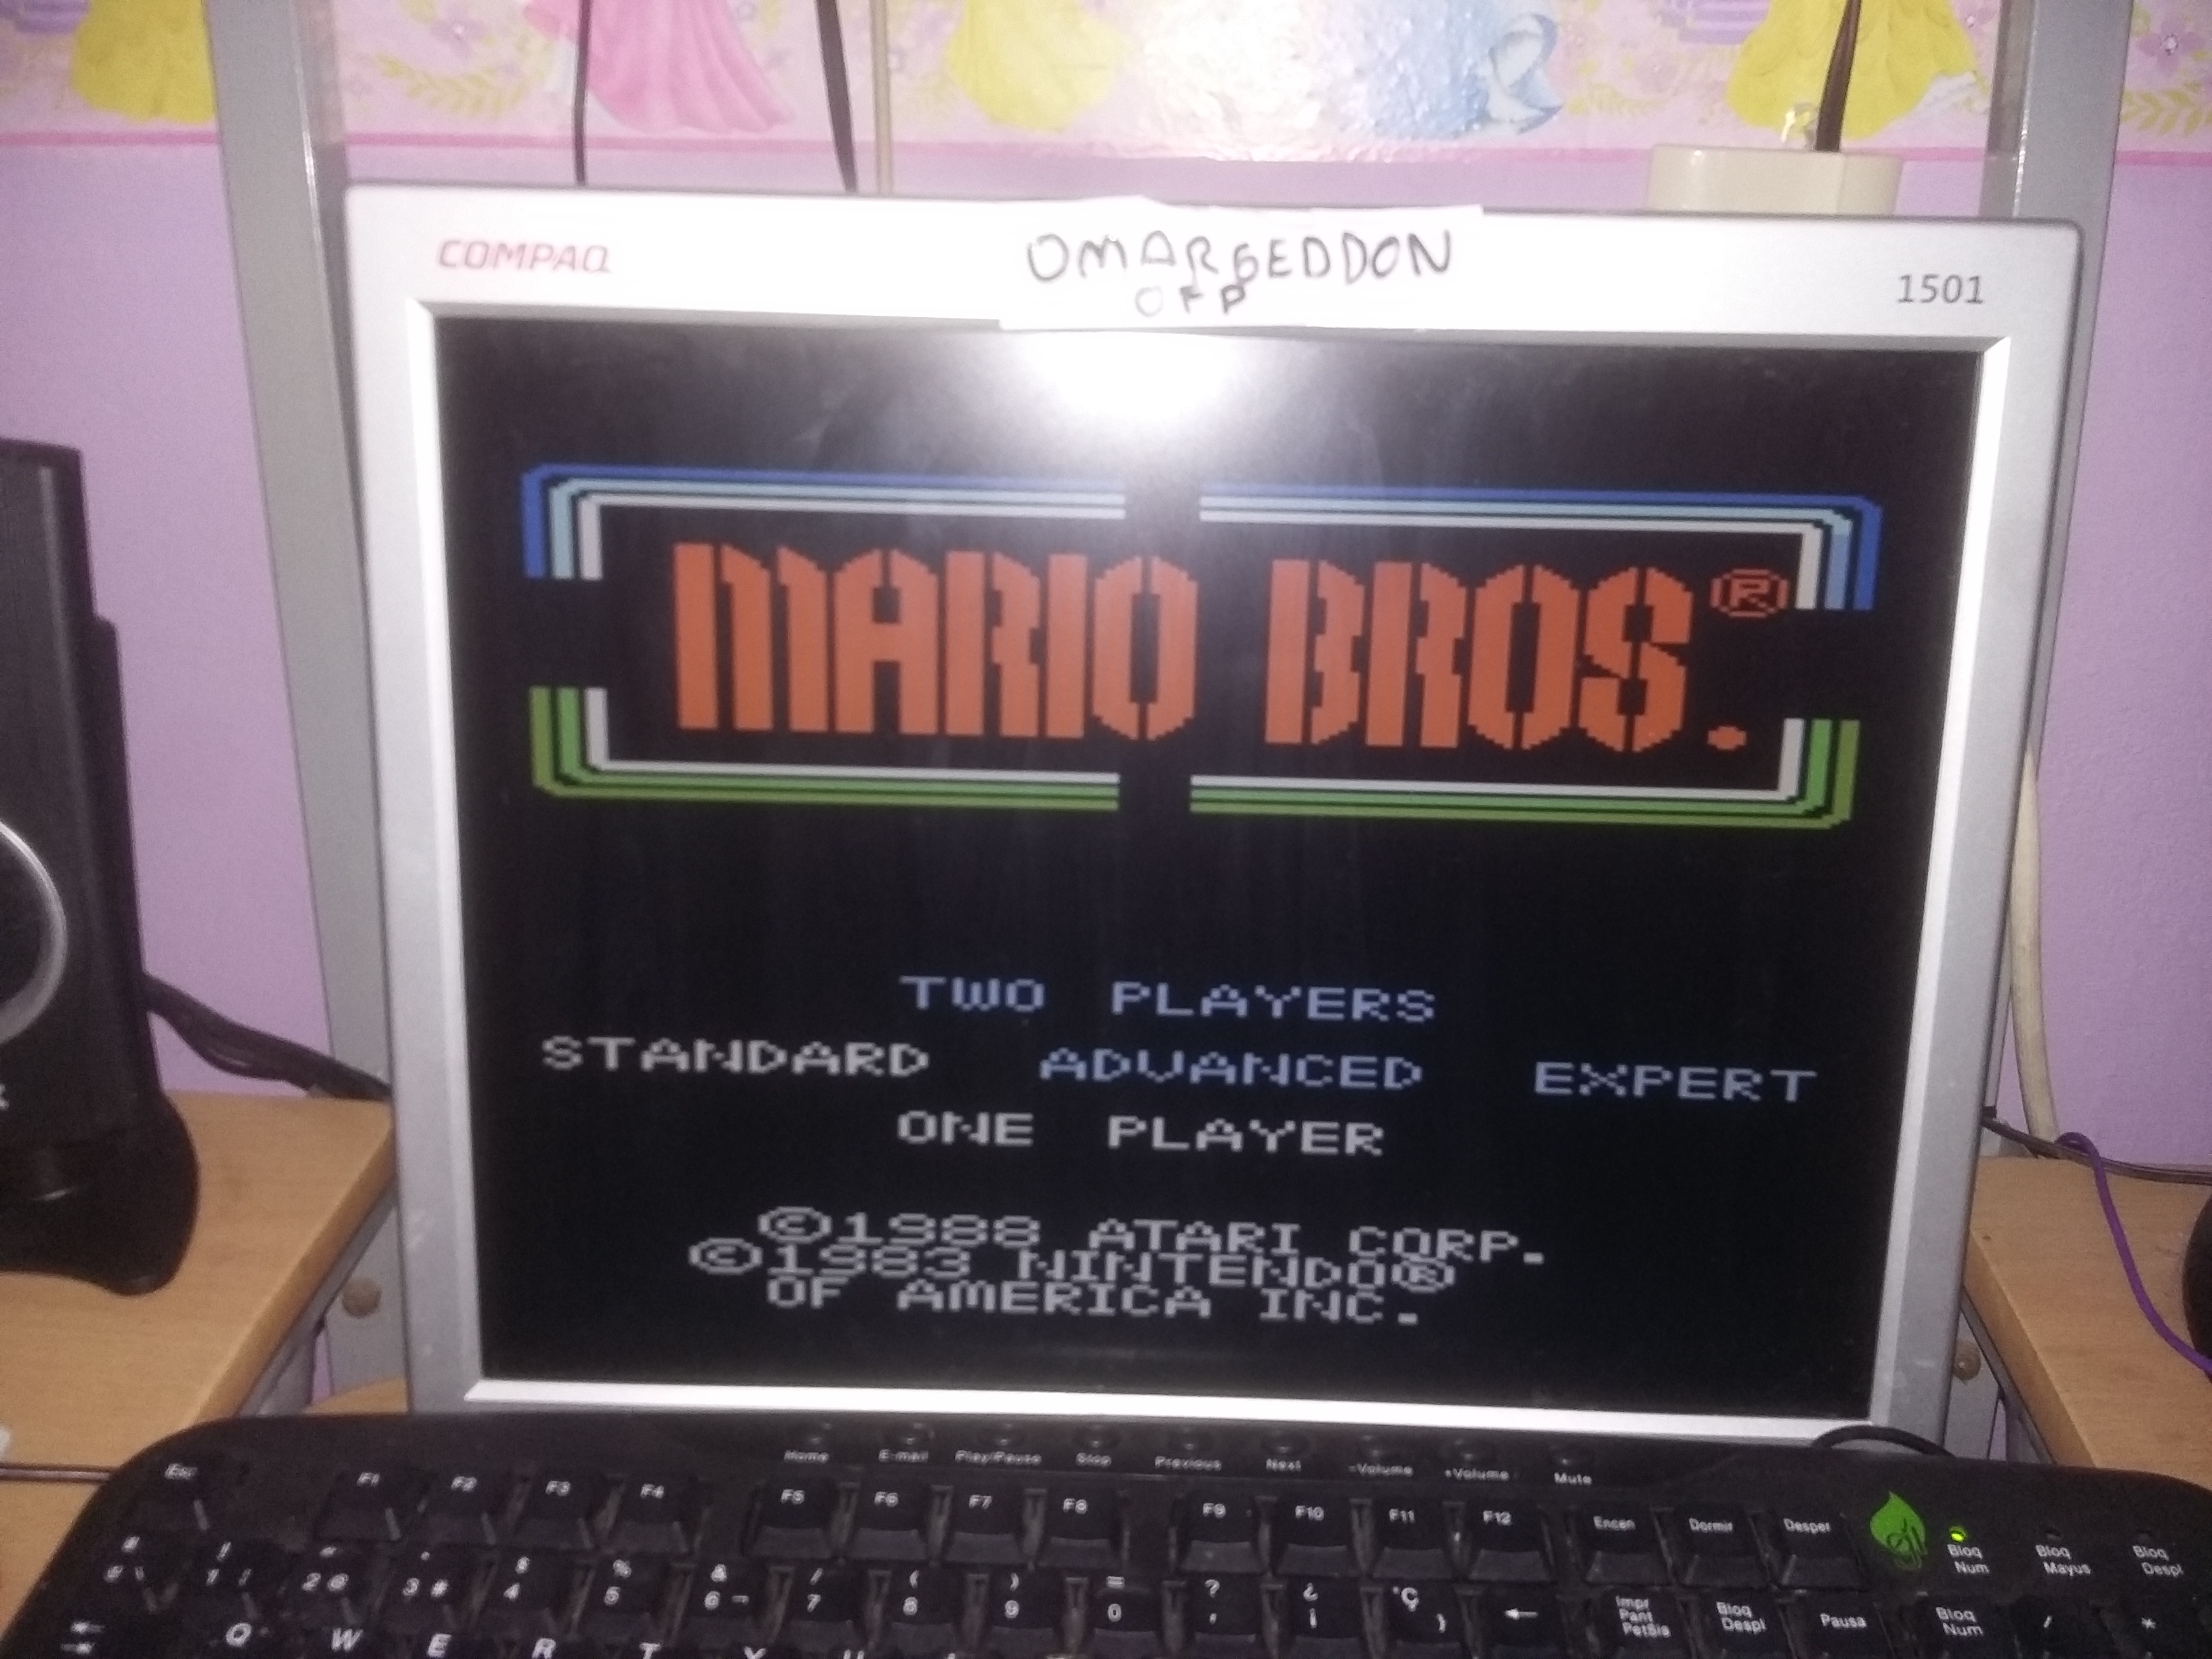 Mario Bros. [Standard] 78,700 points